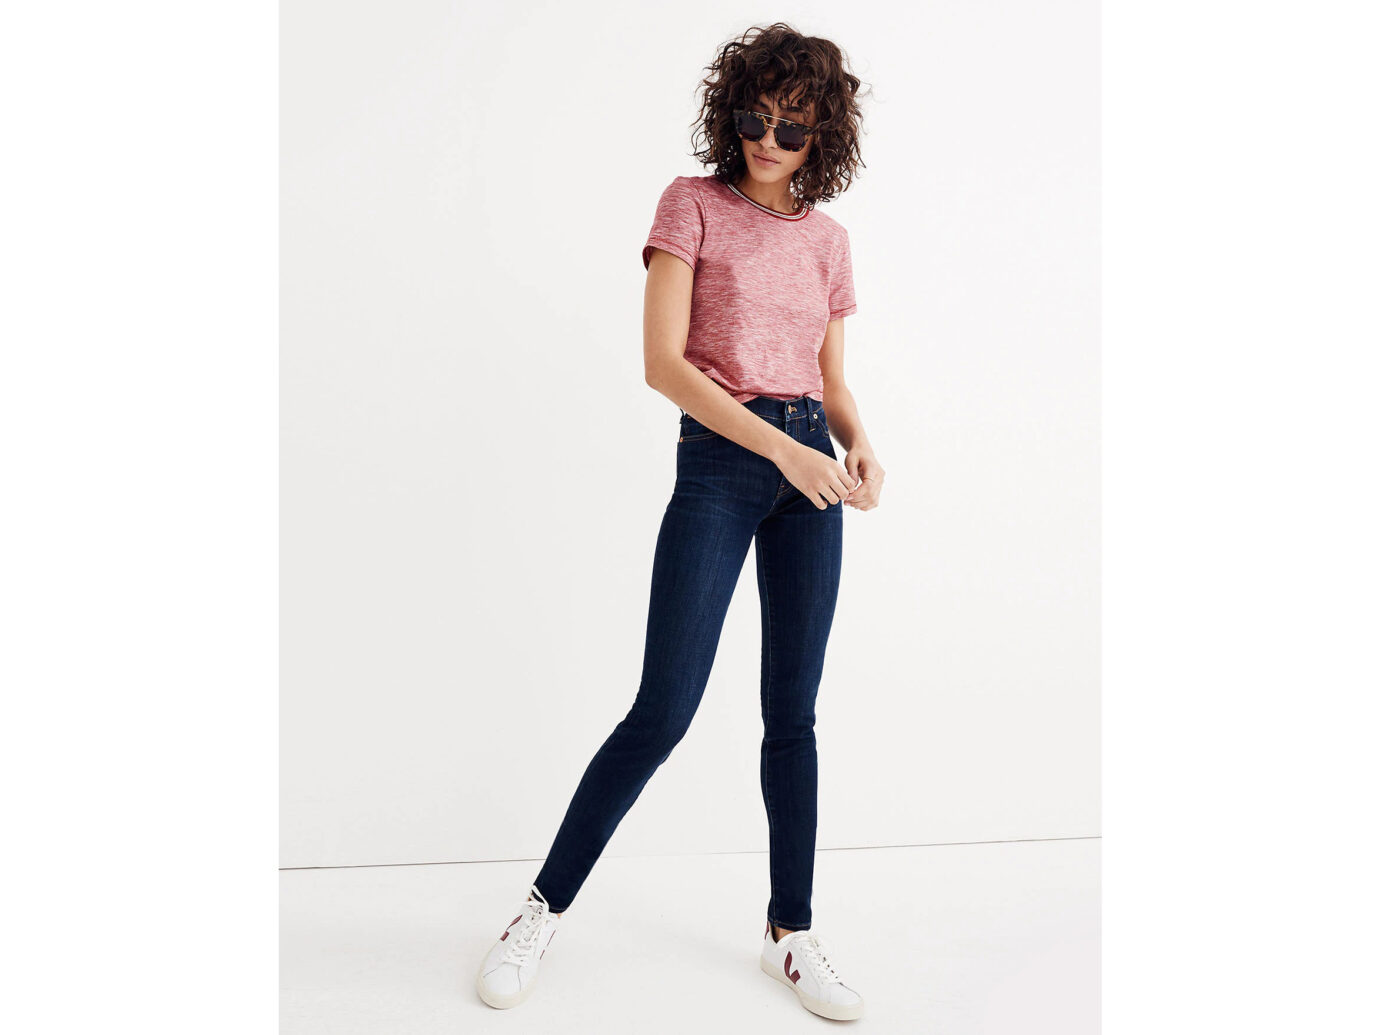 Madewell 9-Inch Mid-Rise Skinny Jeans in Larkspur Wash: TENCEL™ Denim Edition